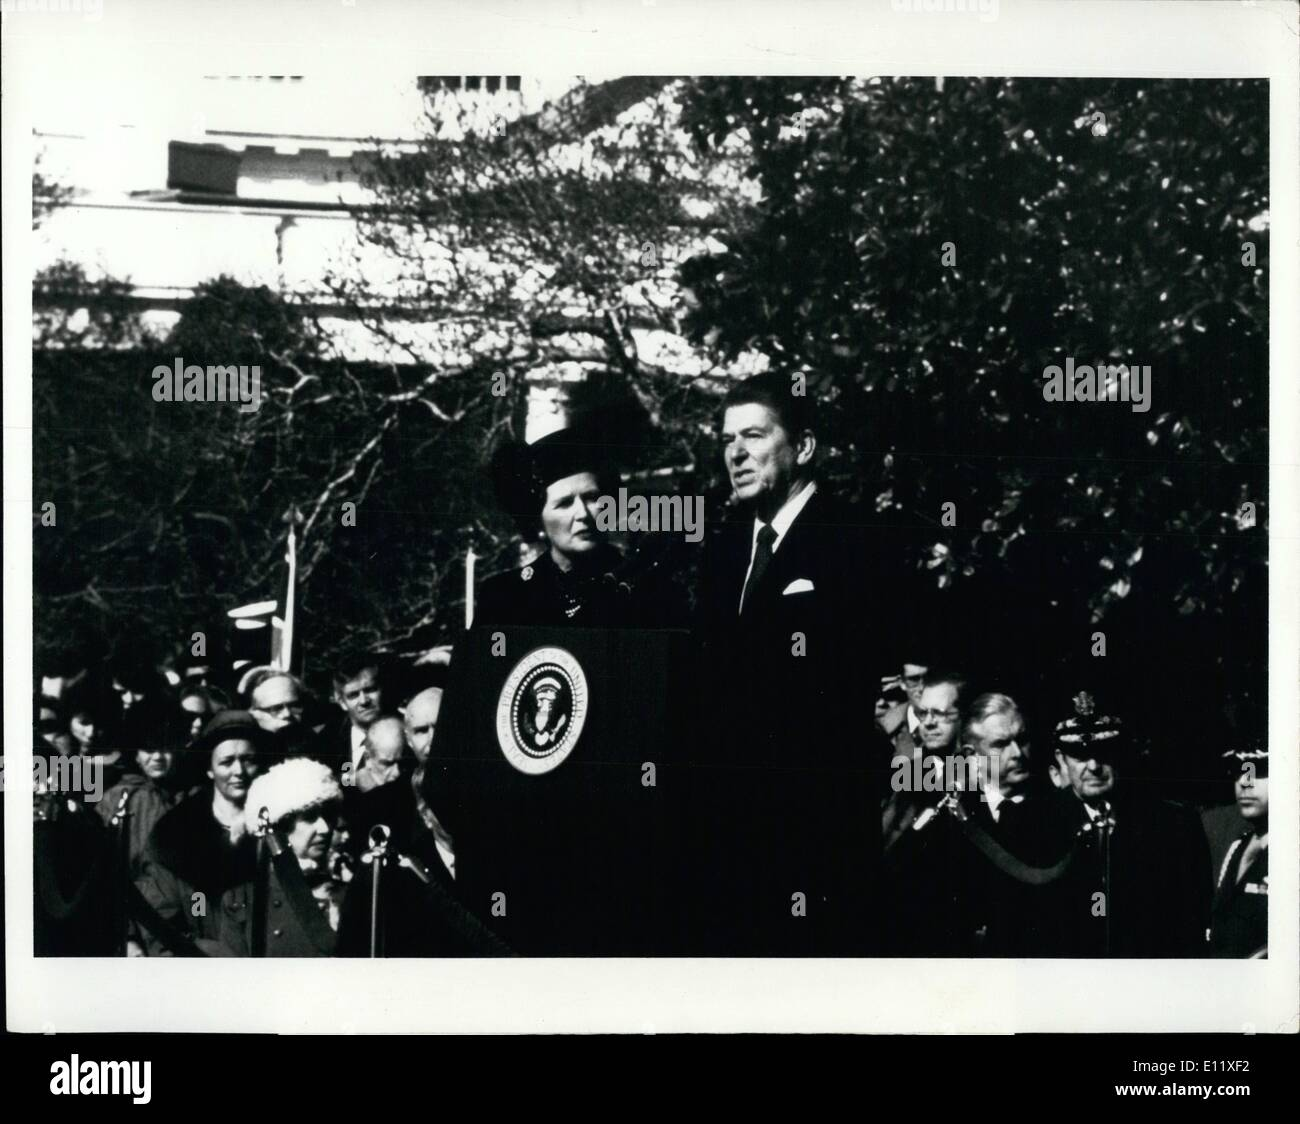 Feb. 02, 1981 - Welcome Ceremonies For P.M. Thatcher. President Ronald Reagan speaks at arrival ceremonies on The South grounds - Stock Image